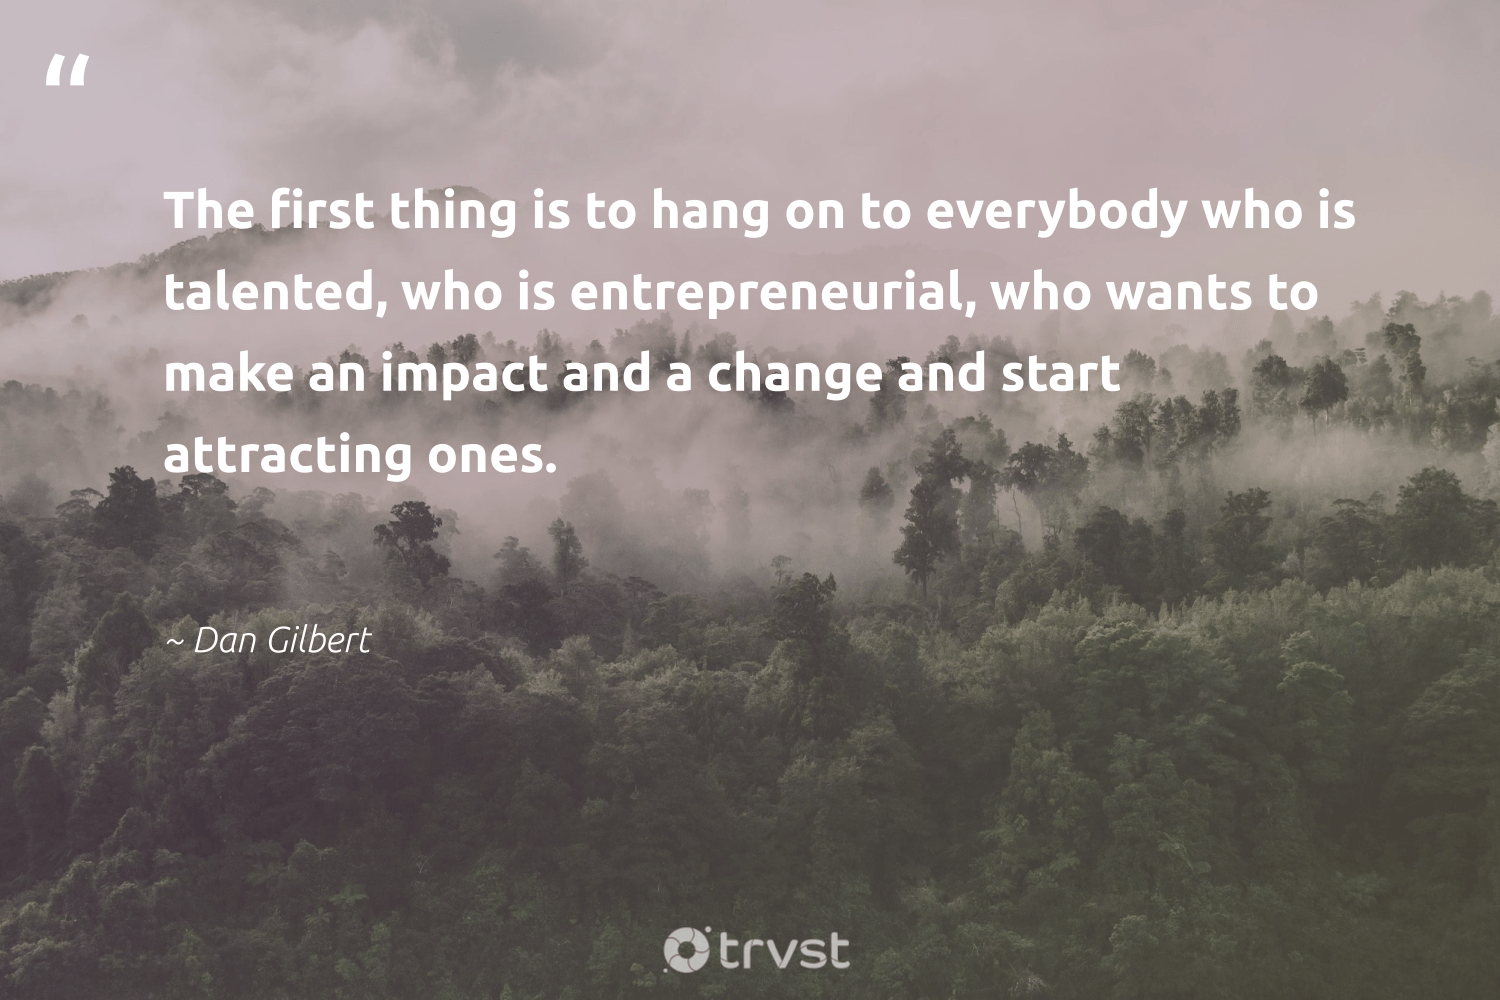 """""""The first thing is to hang on to everybody who is talented, who is entrepreneurial, who wants to make an impact and a change and start attracting ones.""""  - Dan Gilbert #trvst #quotes #impact #giveback #dogood #betterplanet #gogreen #ethicalbusiness #collectiveaction #socialchange #dosomething #weareallone"""